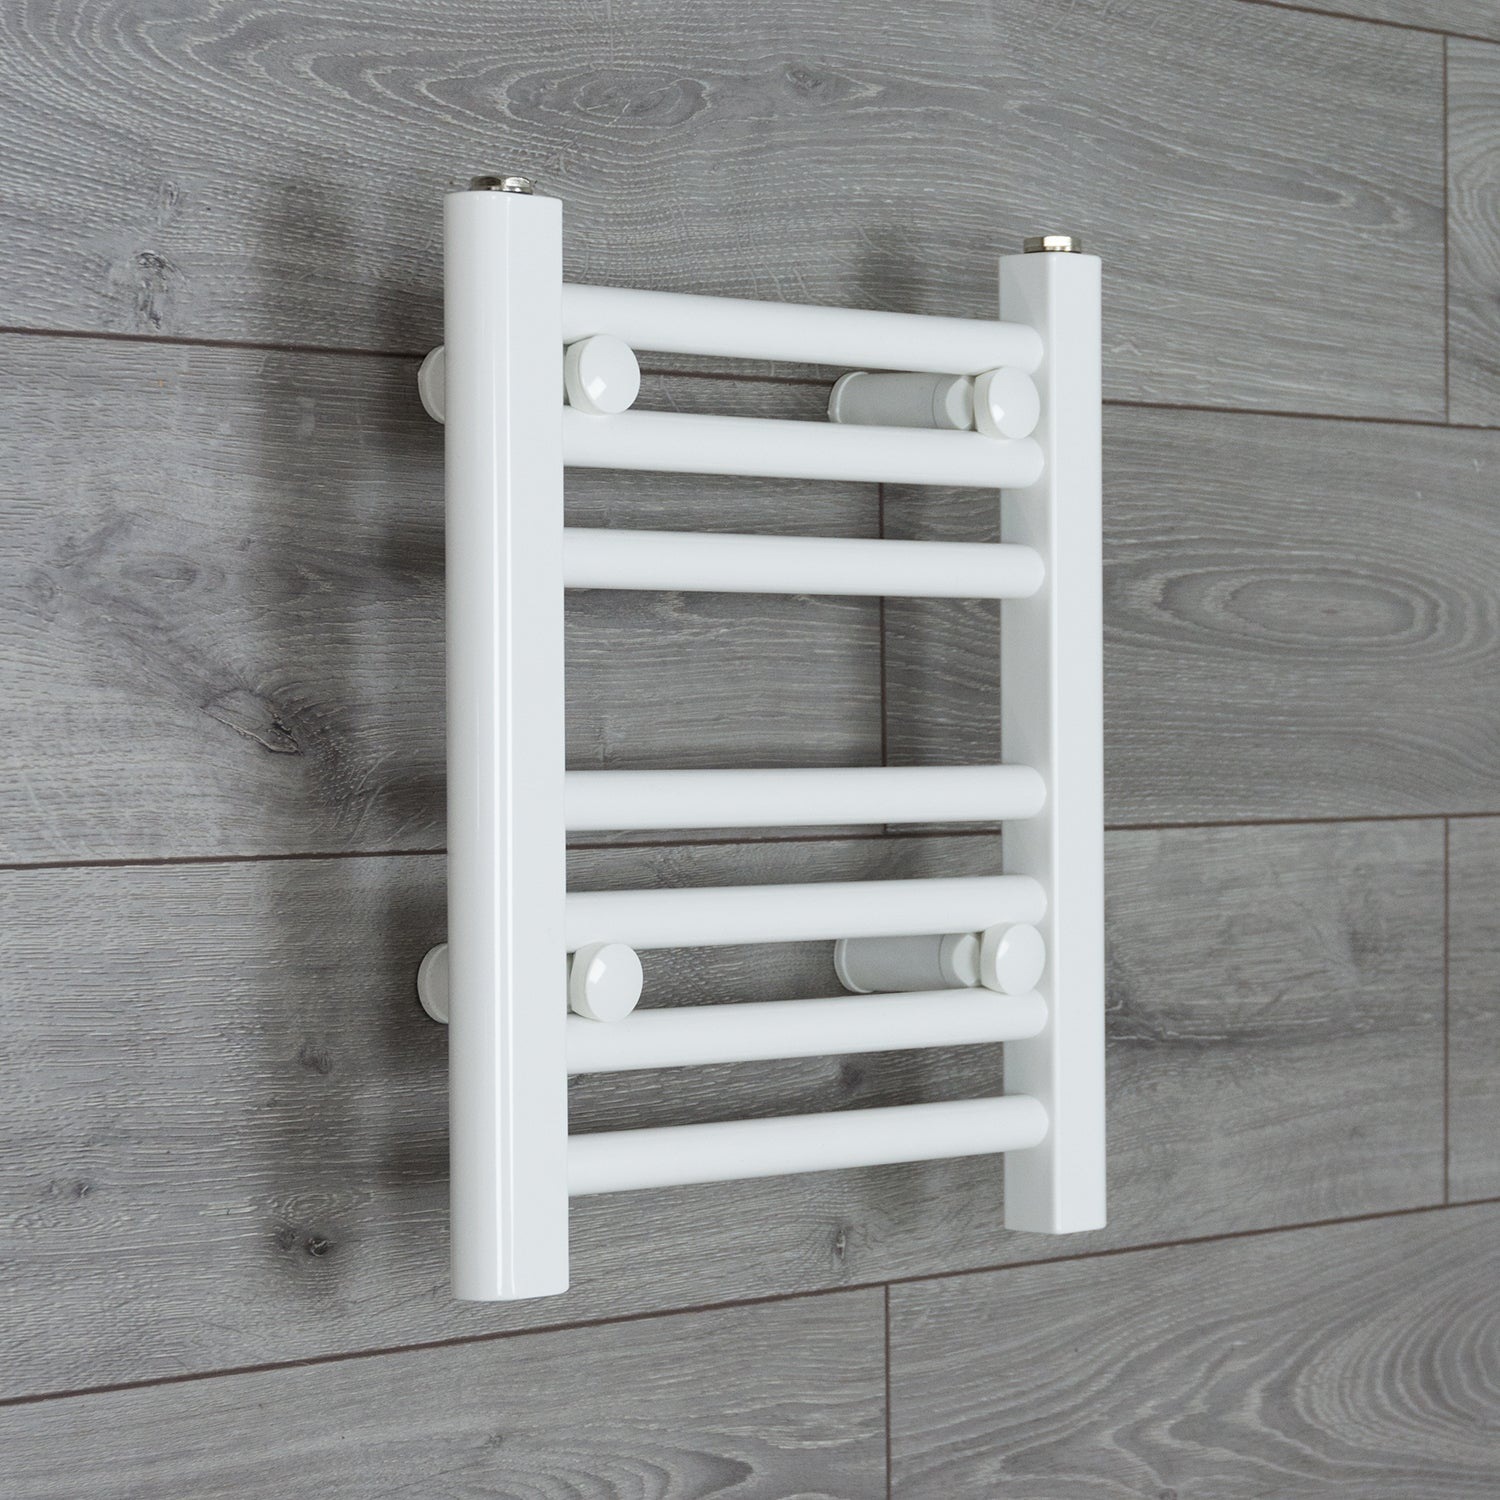 350mm Wide 400mm High White Towel Rail Radiator